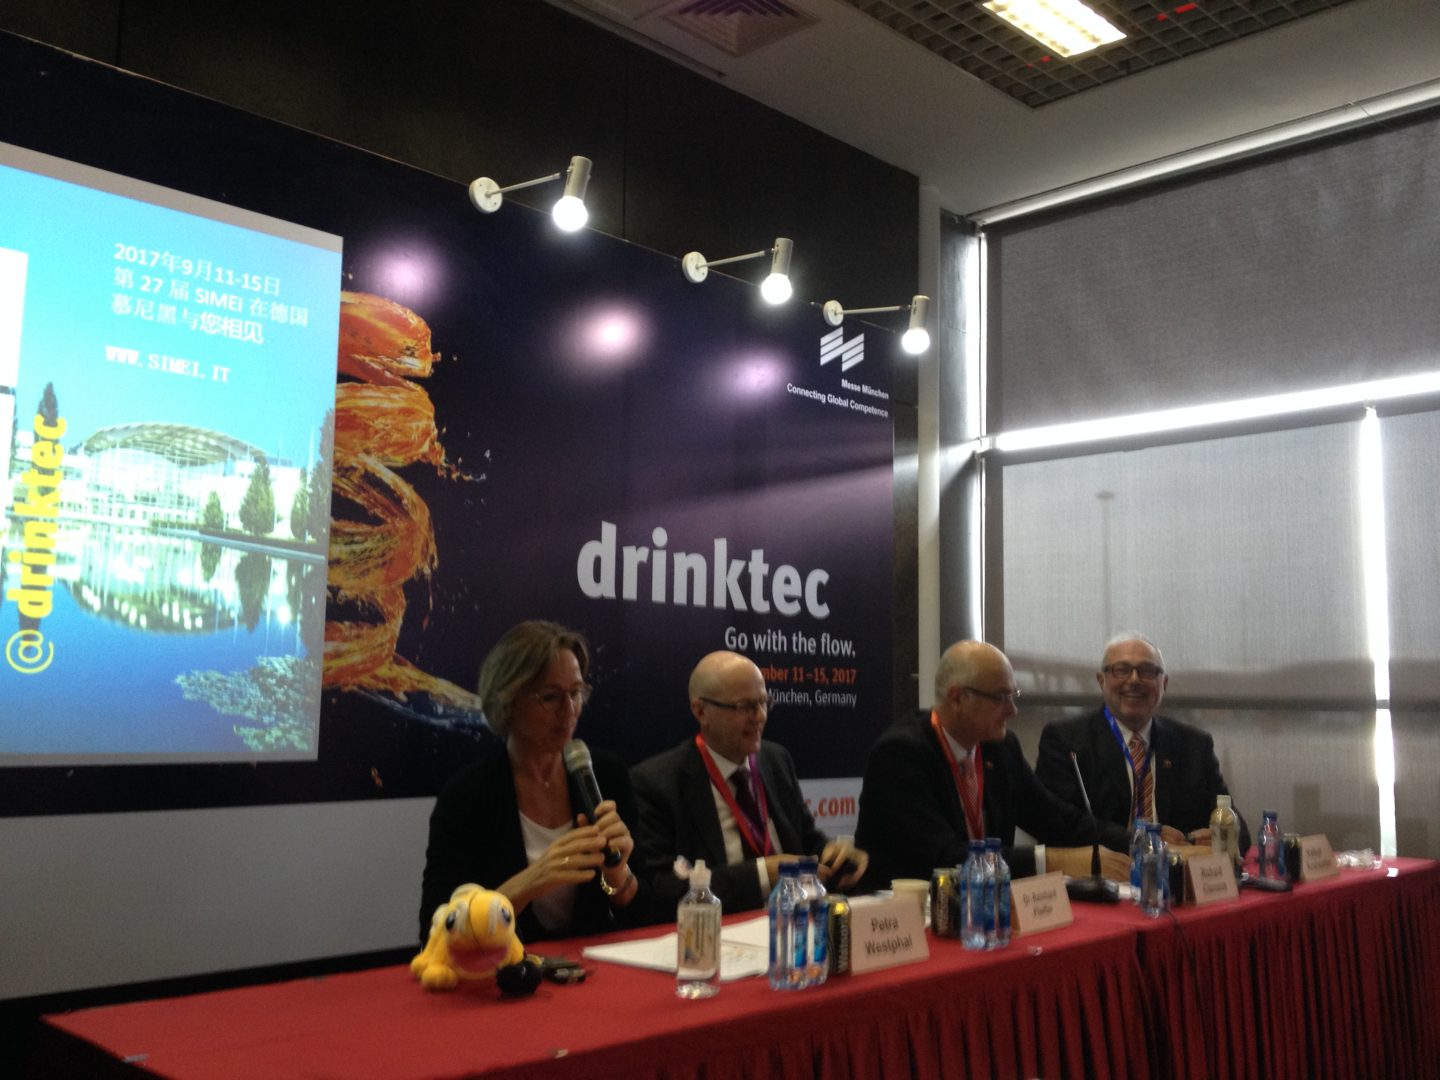 drinktec press conference at CBB